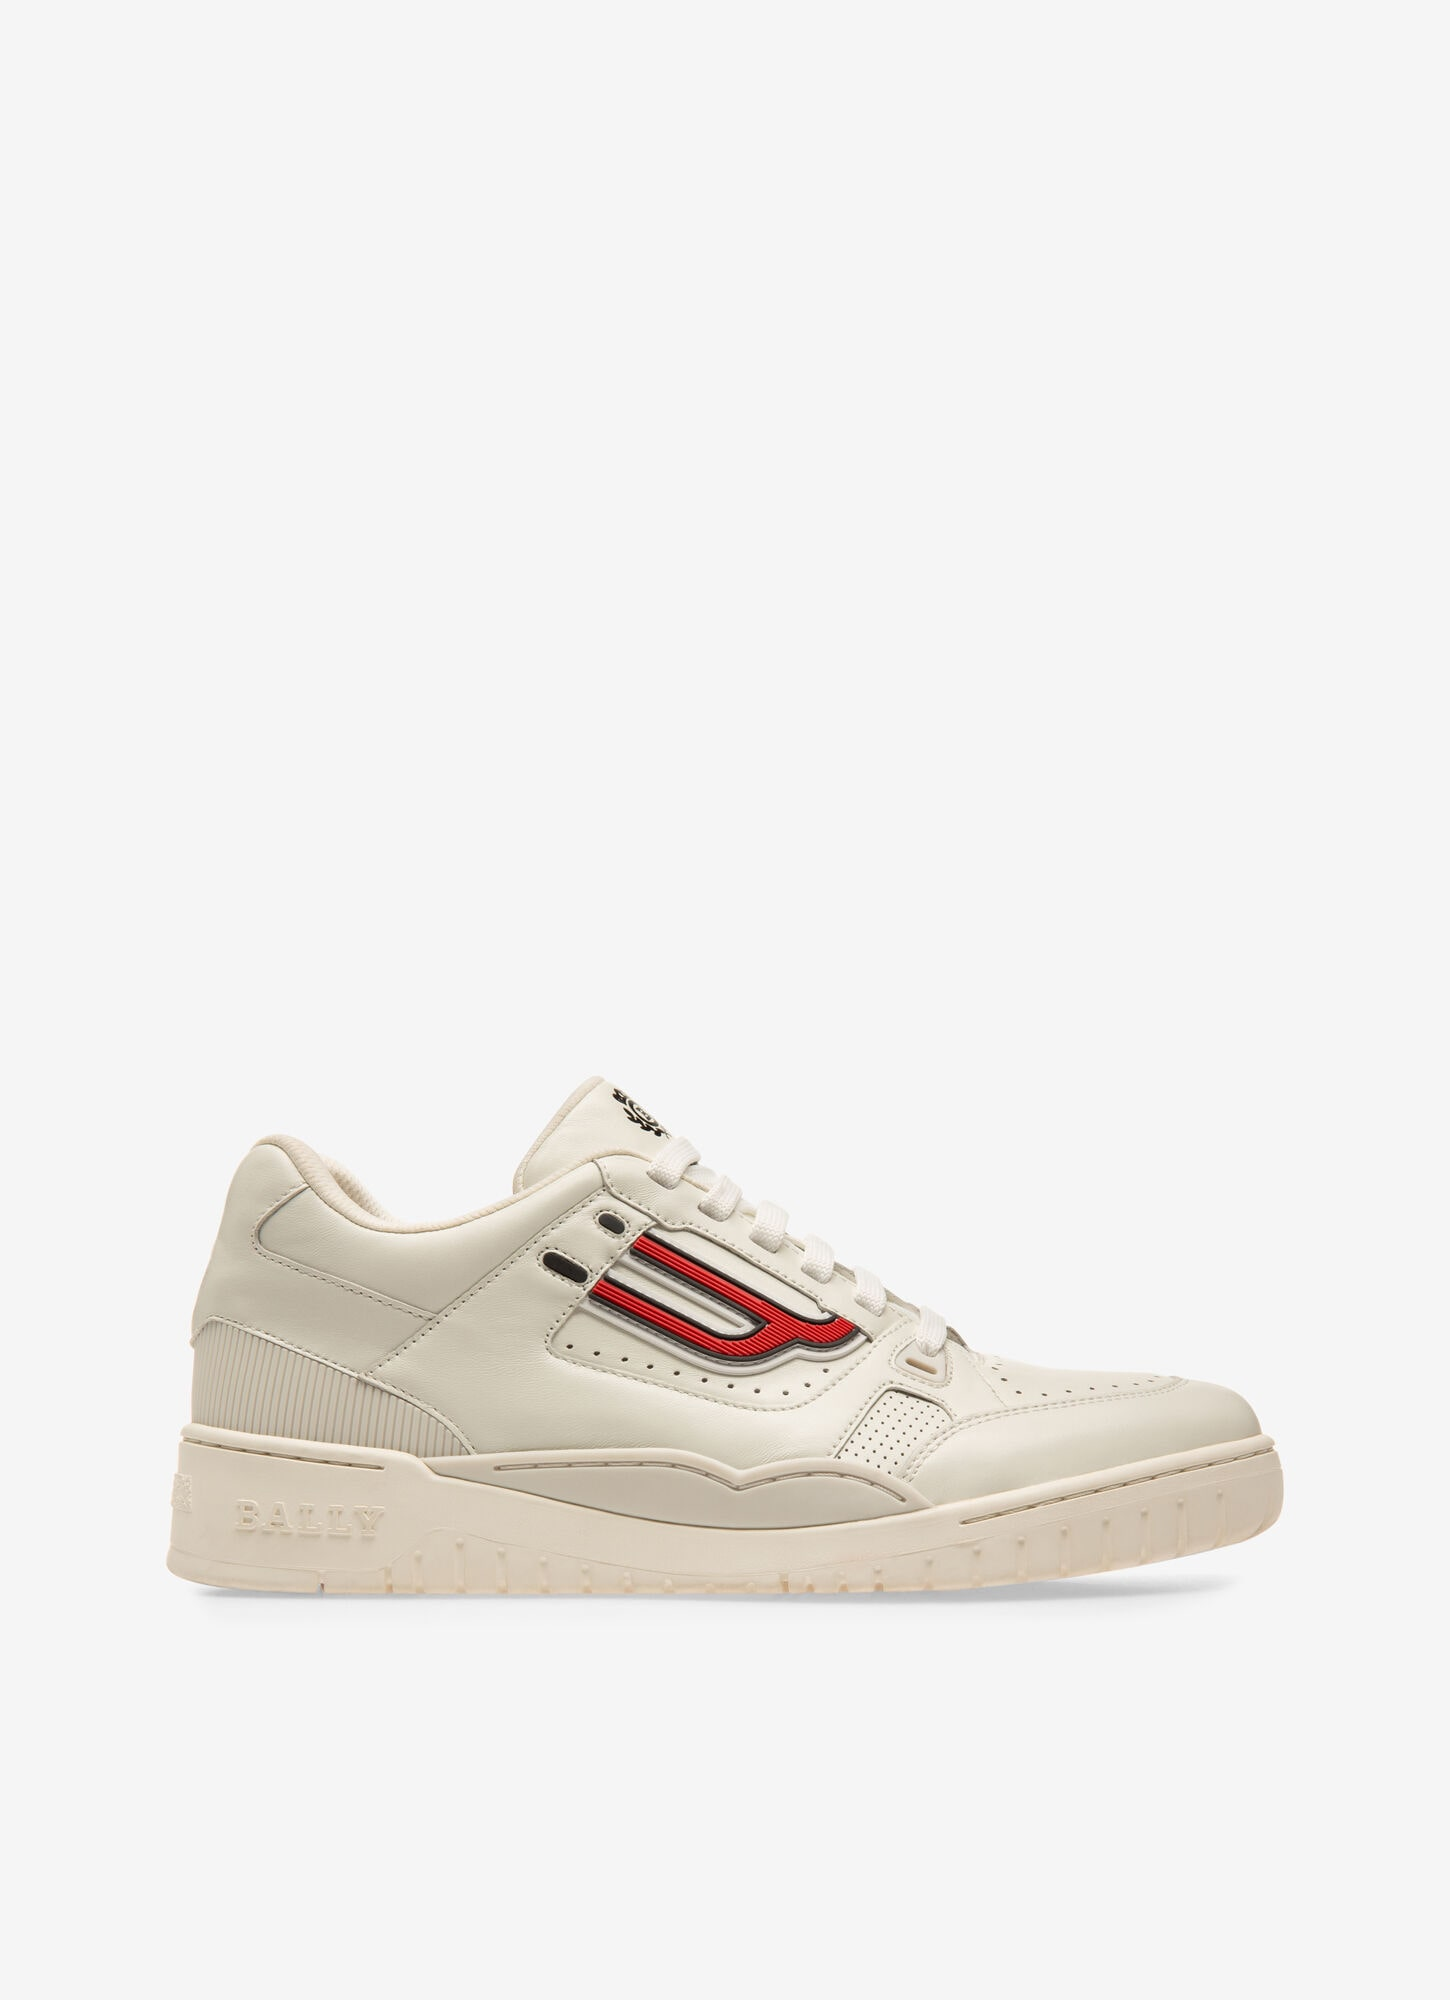 bally shoes mens sale